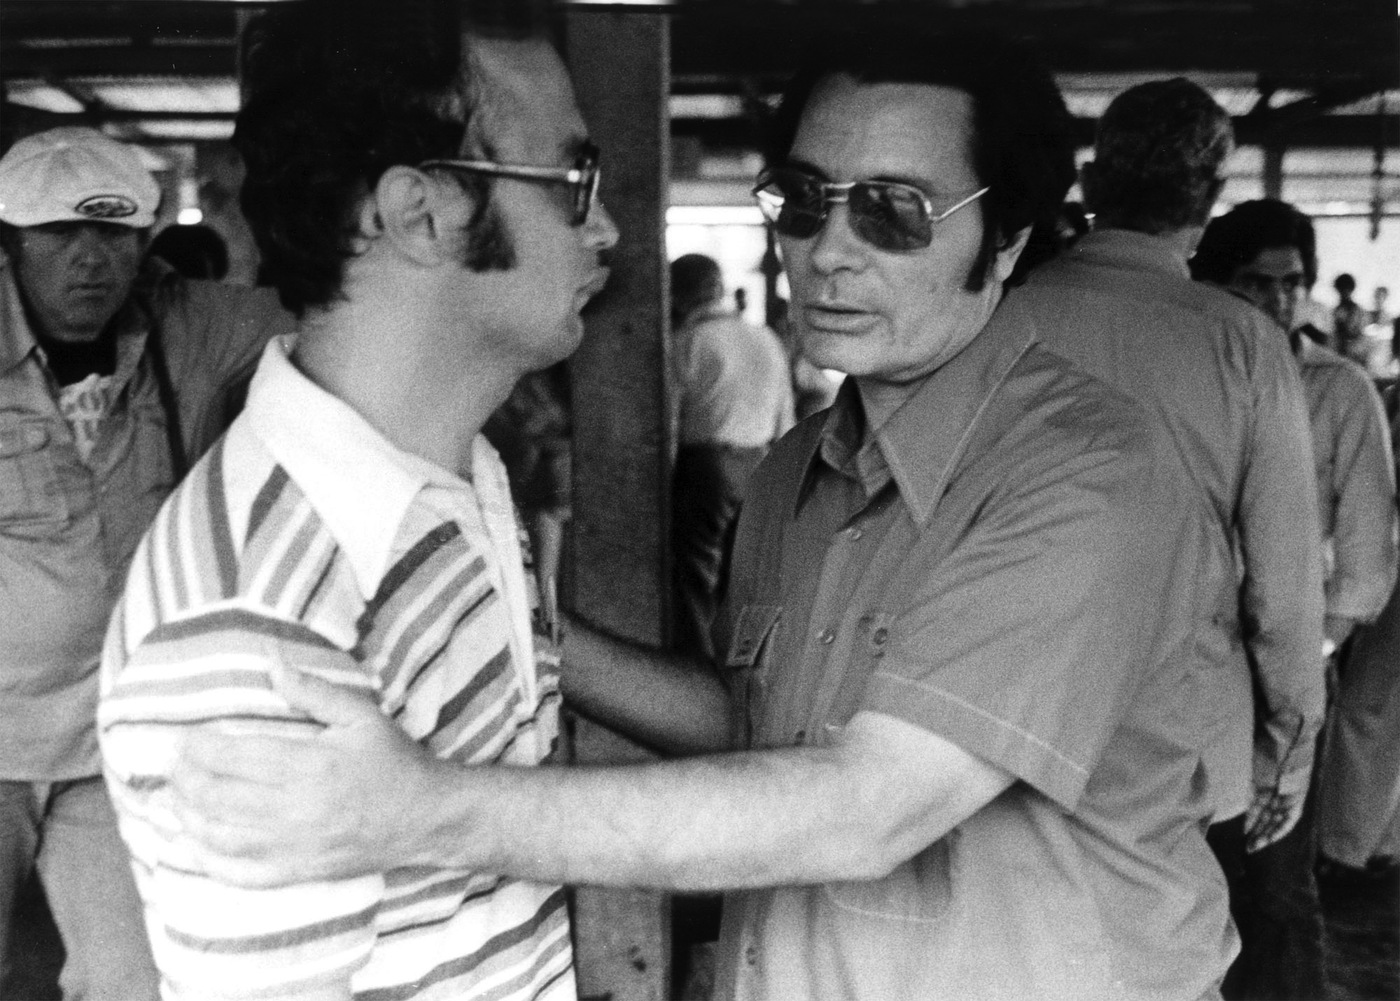 Jim Jones, right, with an unidentified man at Jonestown on November 18, 1978. Shortly after taking the picture, the photographer was killed during the ambush at the airport. AP Photo.